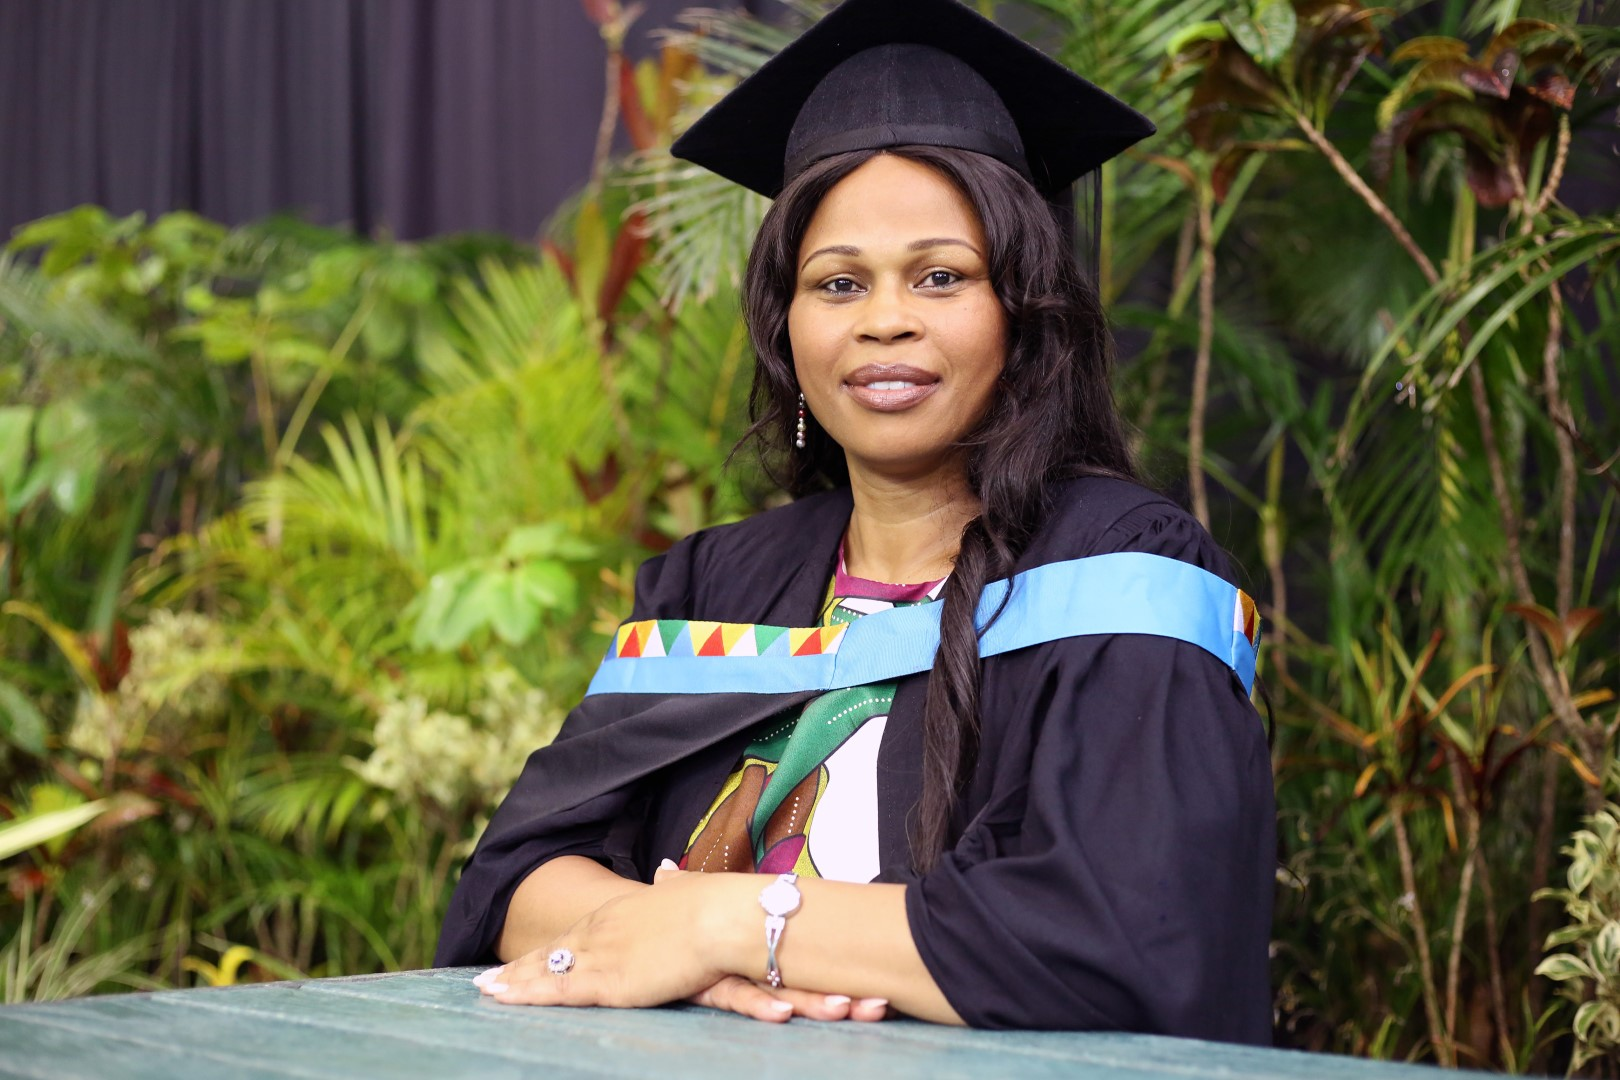 Passion for Biblical Studies Secures UKZN Staffer Theology Degree